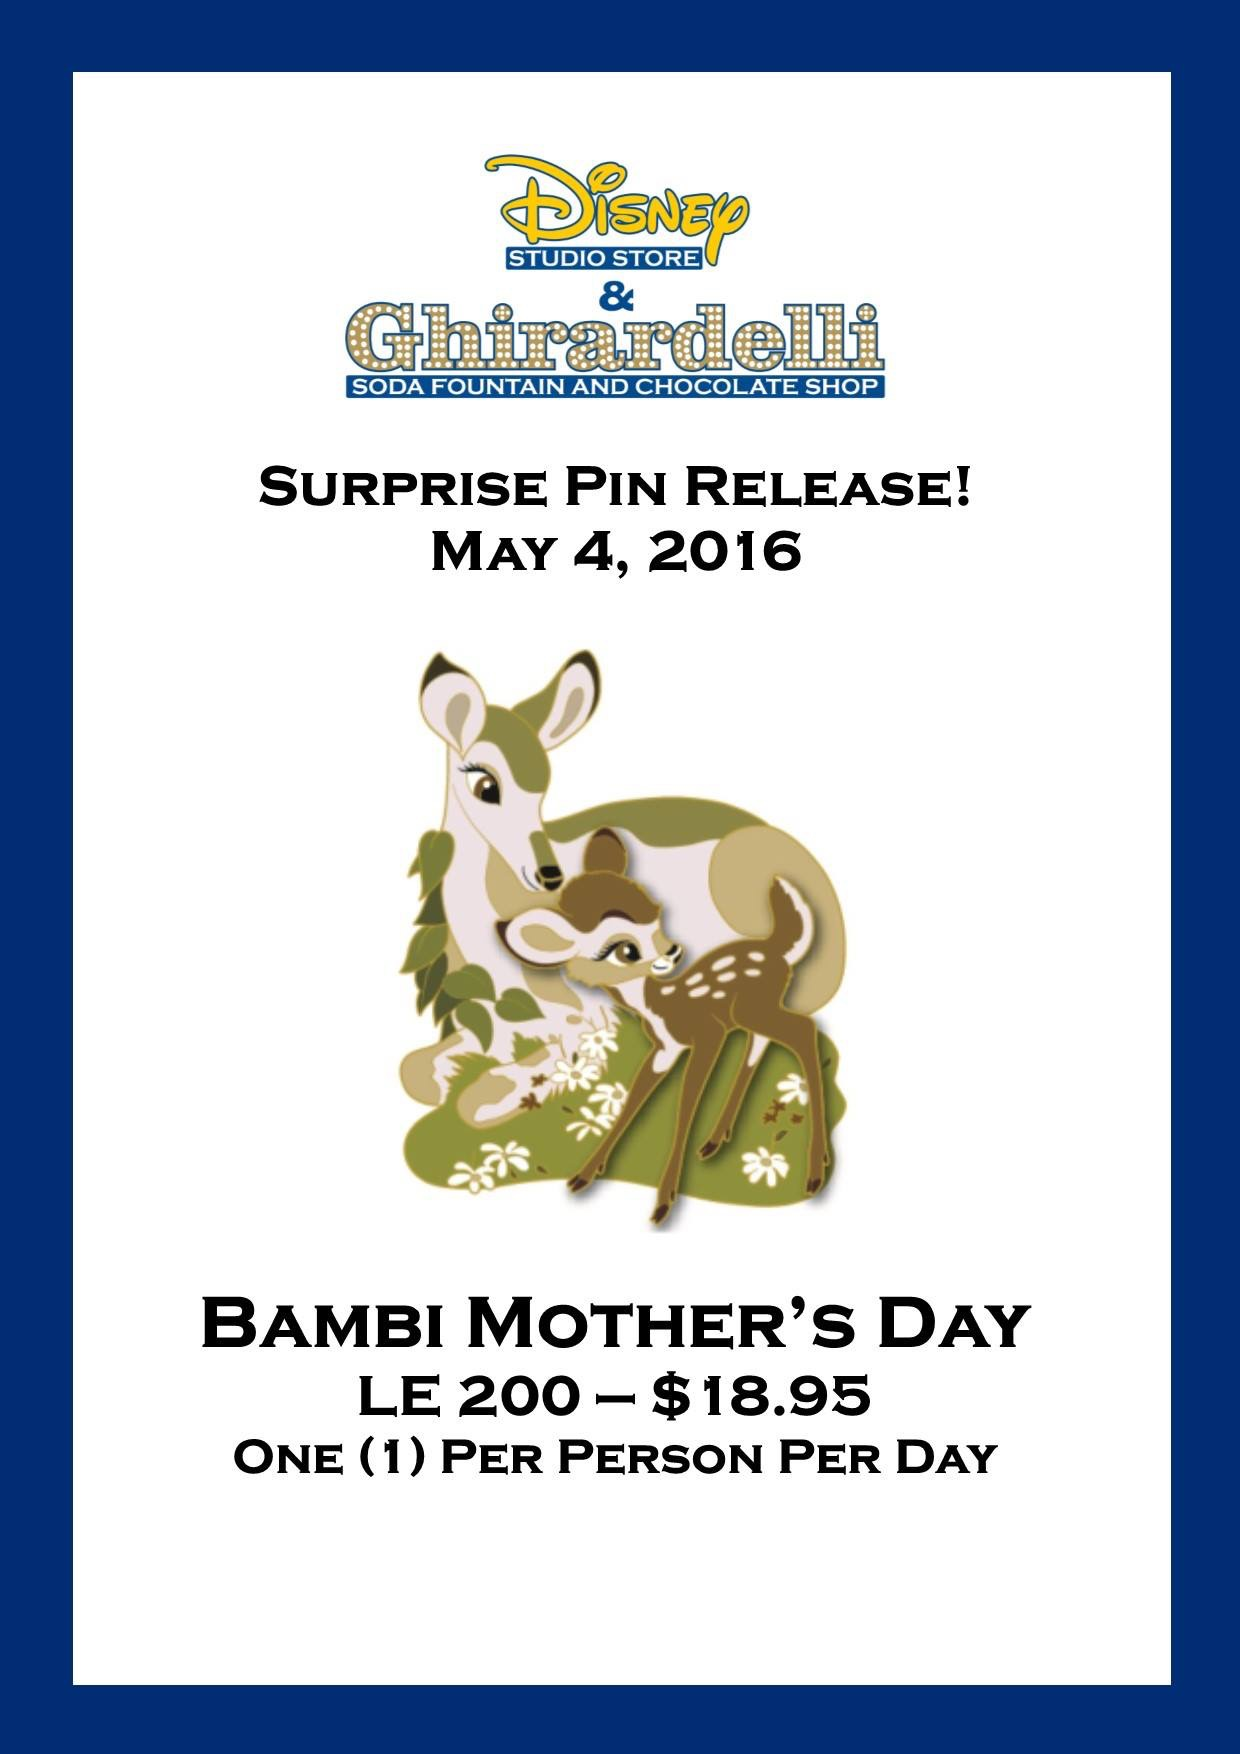 Surprise Bambi Mother's Pin Released